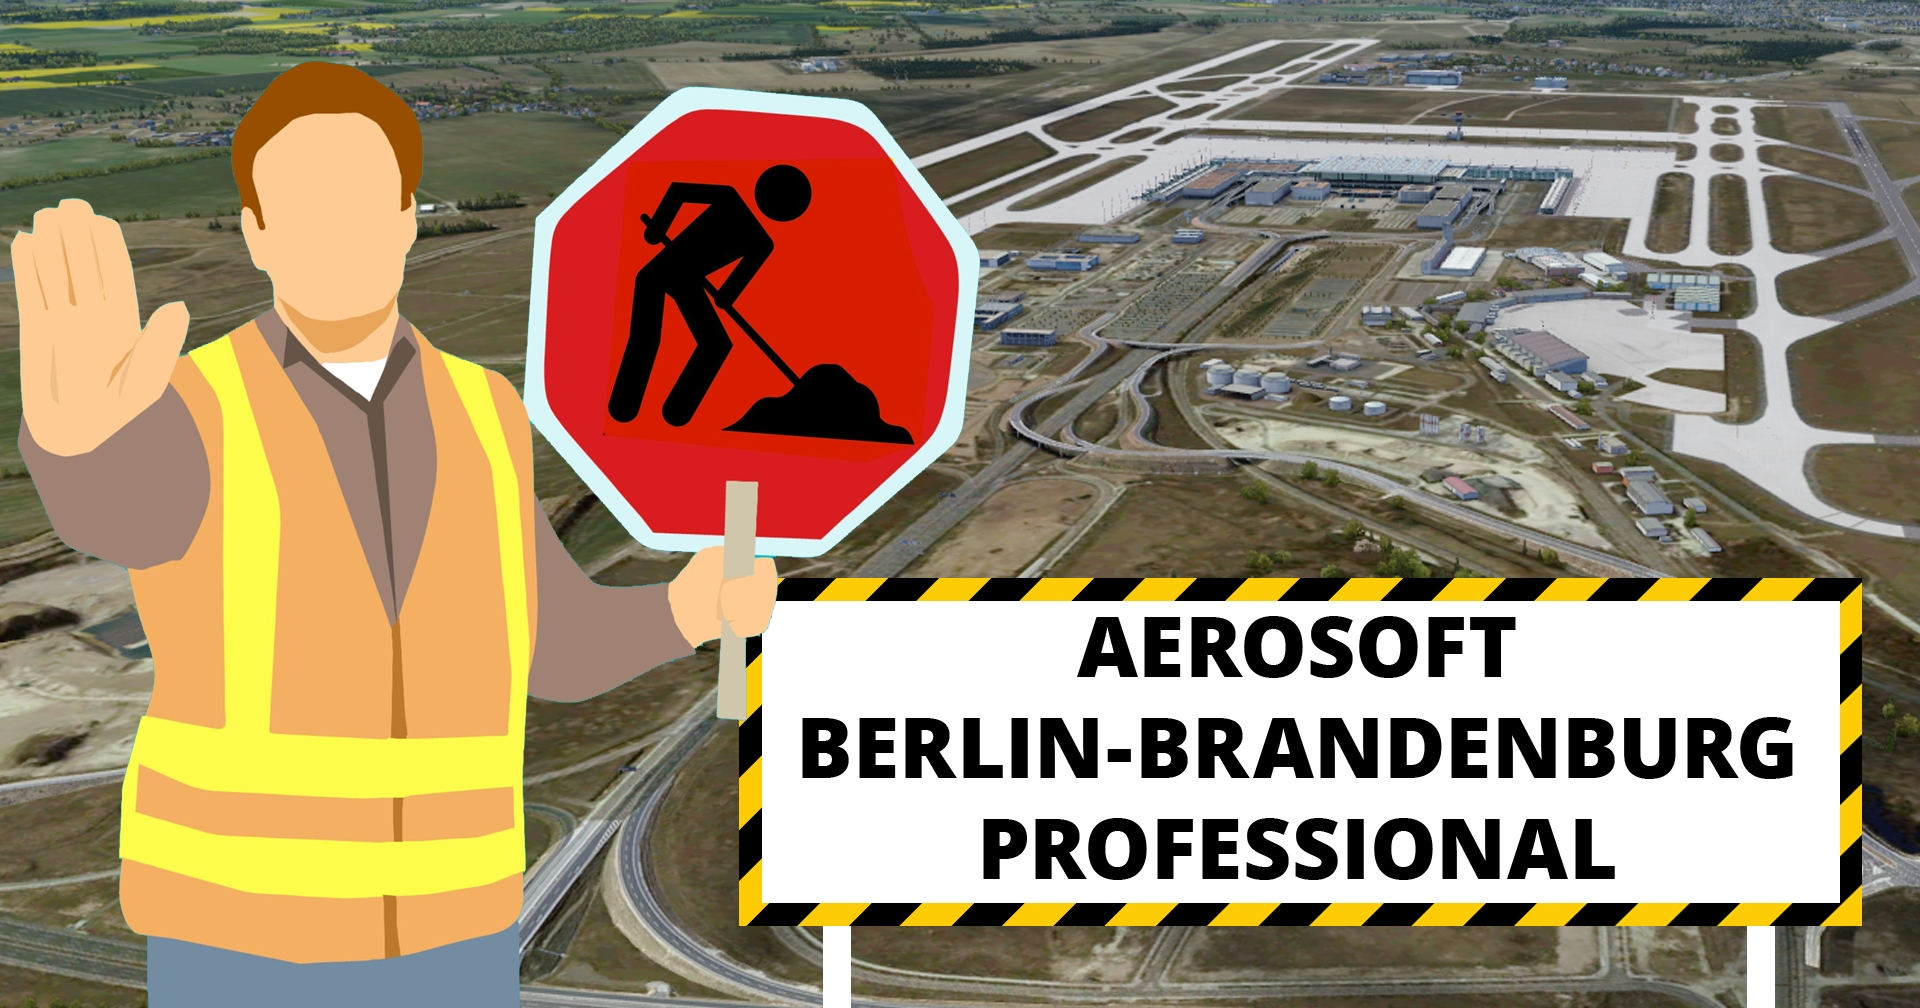 Review Aerosoft Berlin-Brandenburg Professional Titelbild